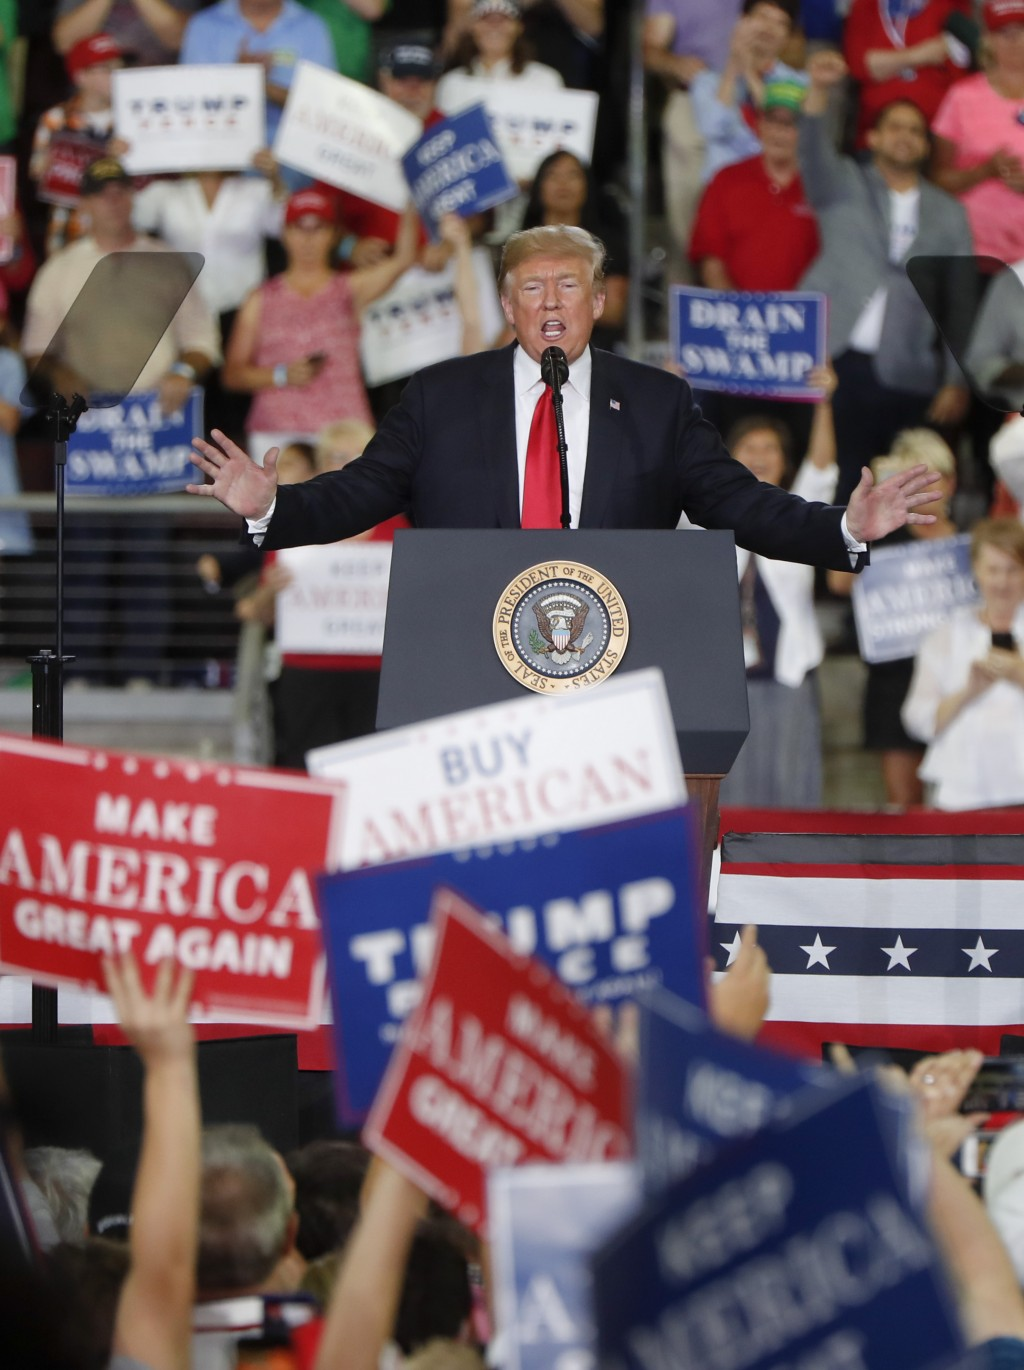 President Donald Trump speaks at a rally endorsing the Republican ticket in Pennsylvania on Wednesday, Oct. 10, 2018 in Erie, Pa.(AP Photo/Keith Srako